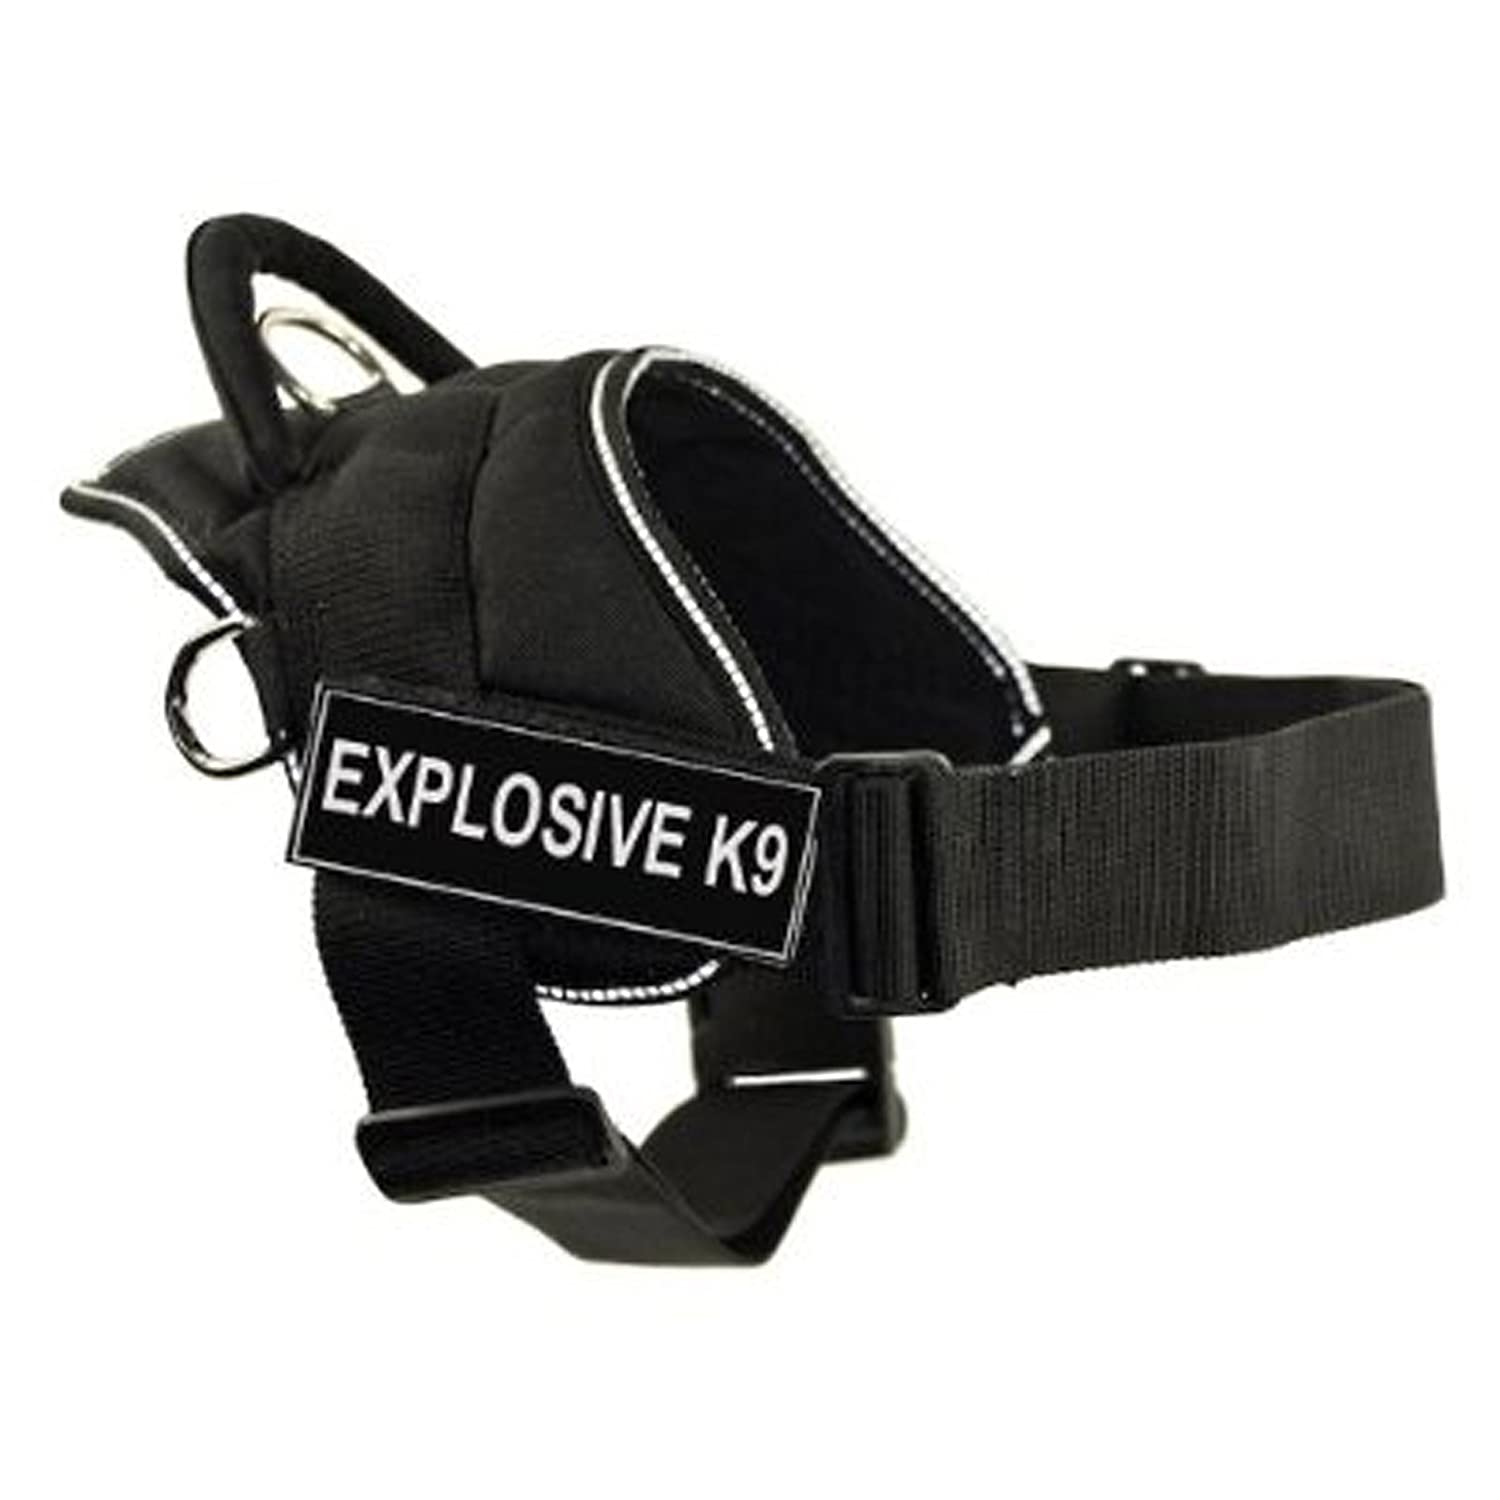 Dean & Tyler DT Fun Works Harness, Explosive K9, Black With Reflective Trim, XX-Small Fits Girth Size  18-Inch to 22-Inch